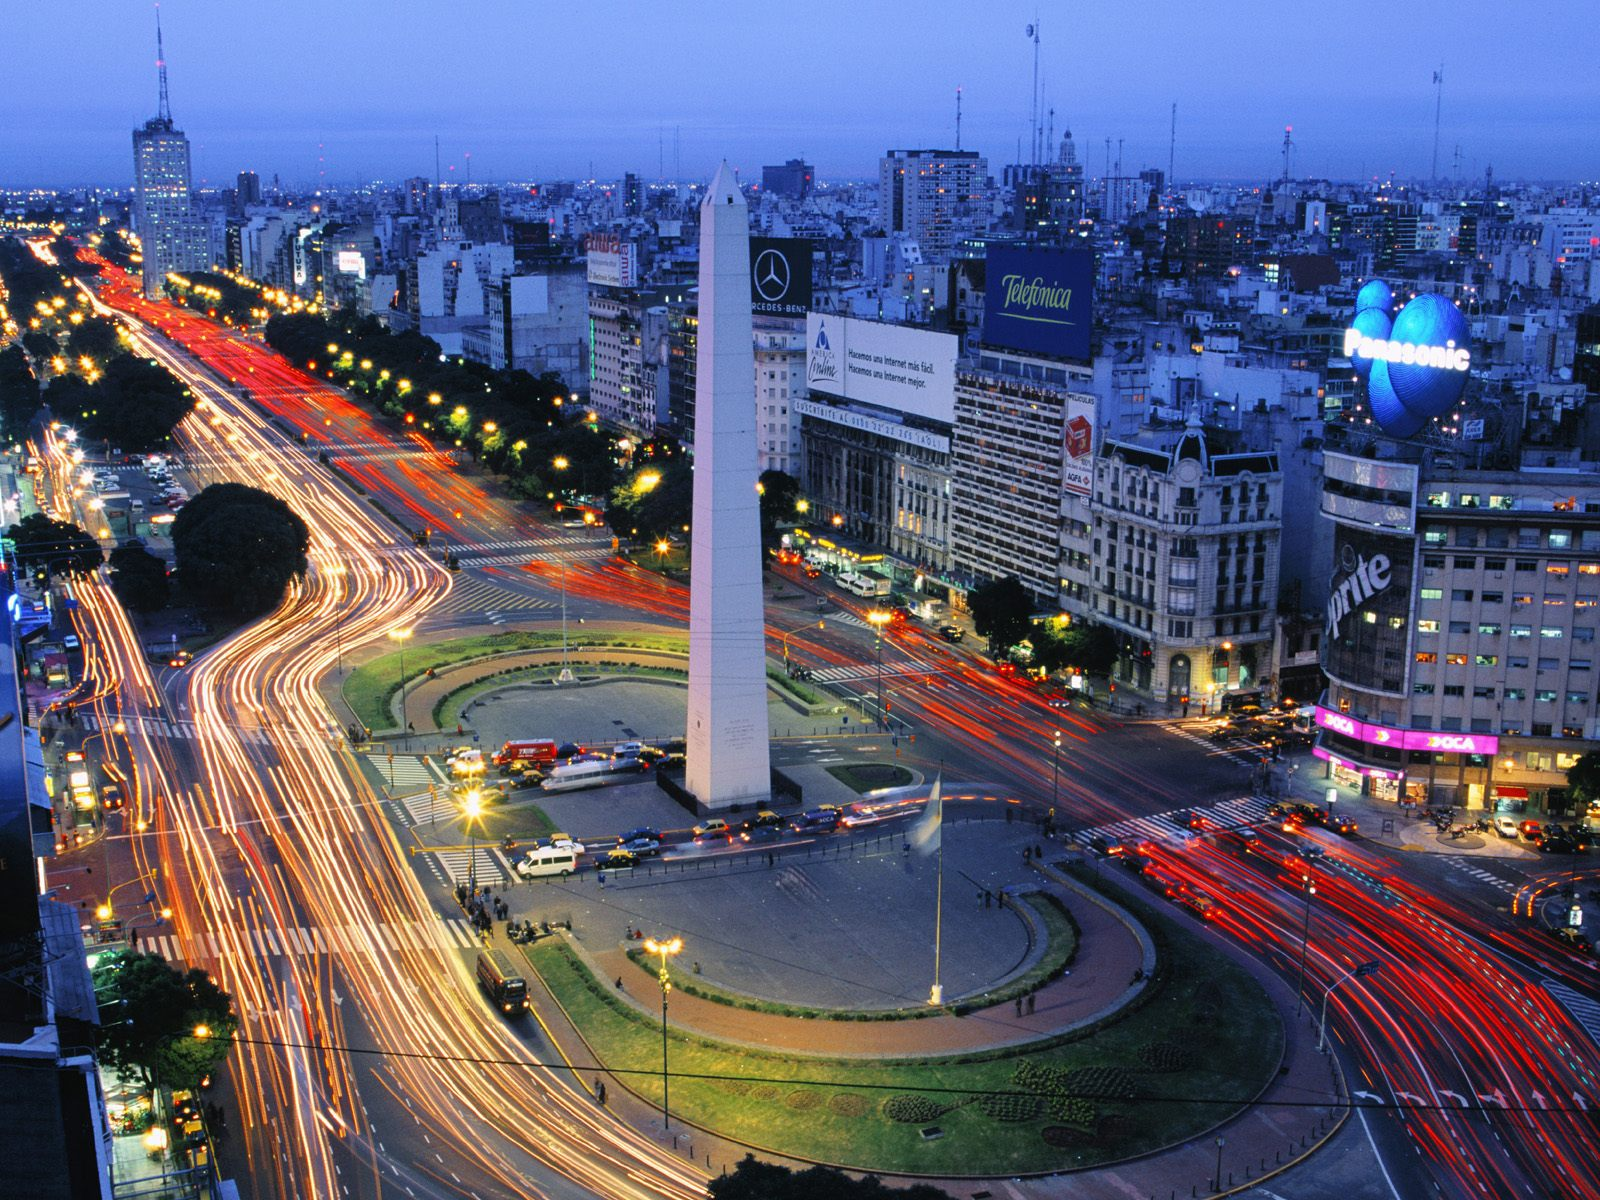 Hotels near Buenos Aires